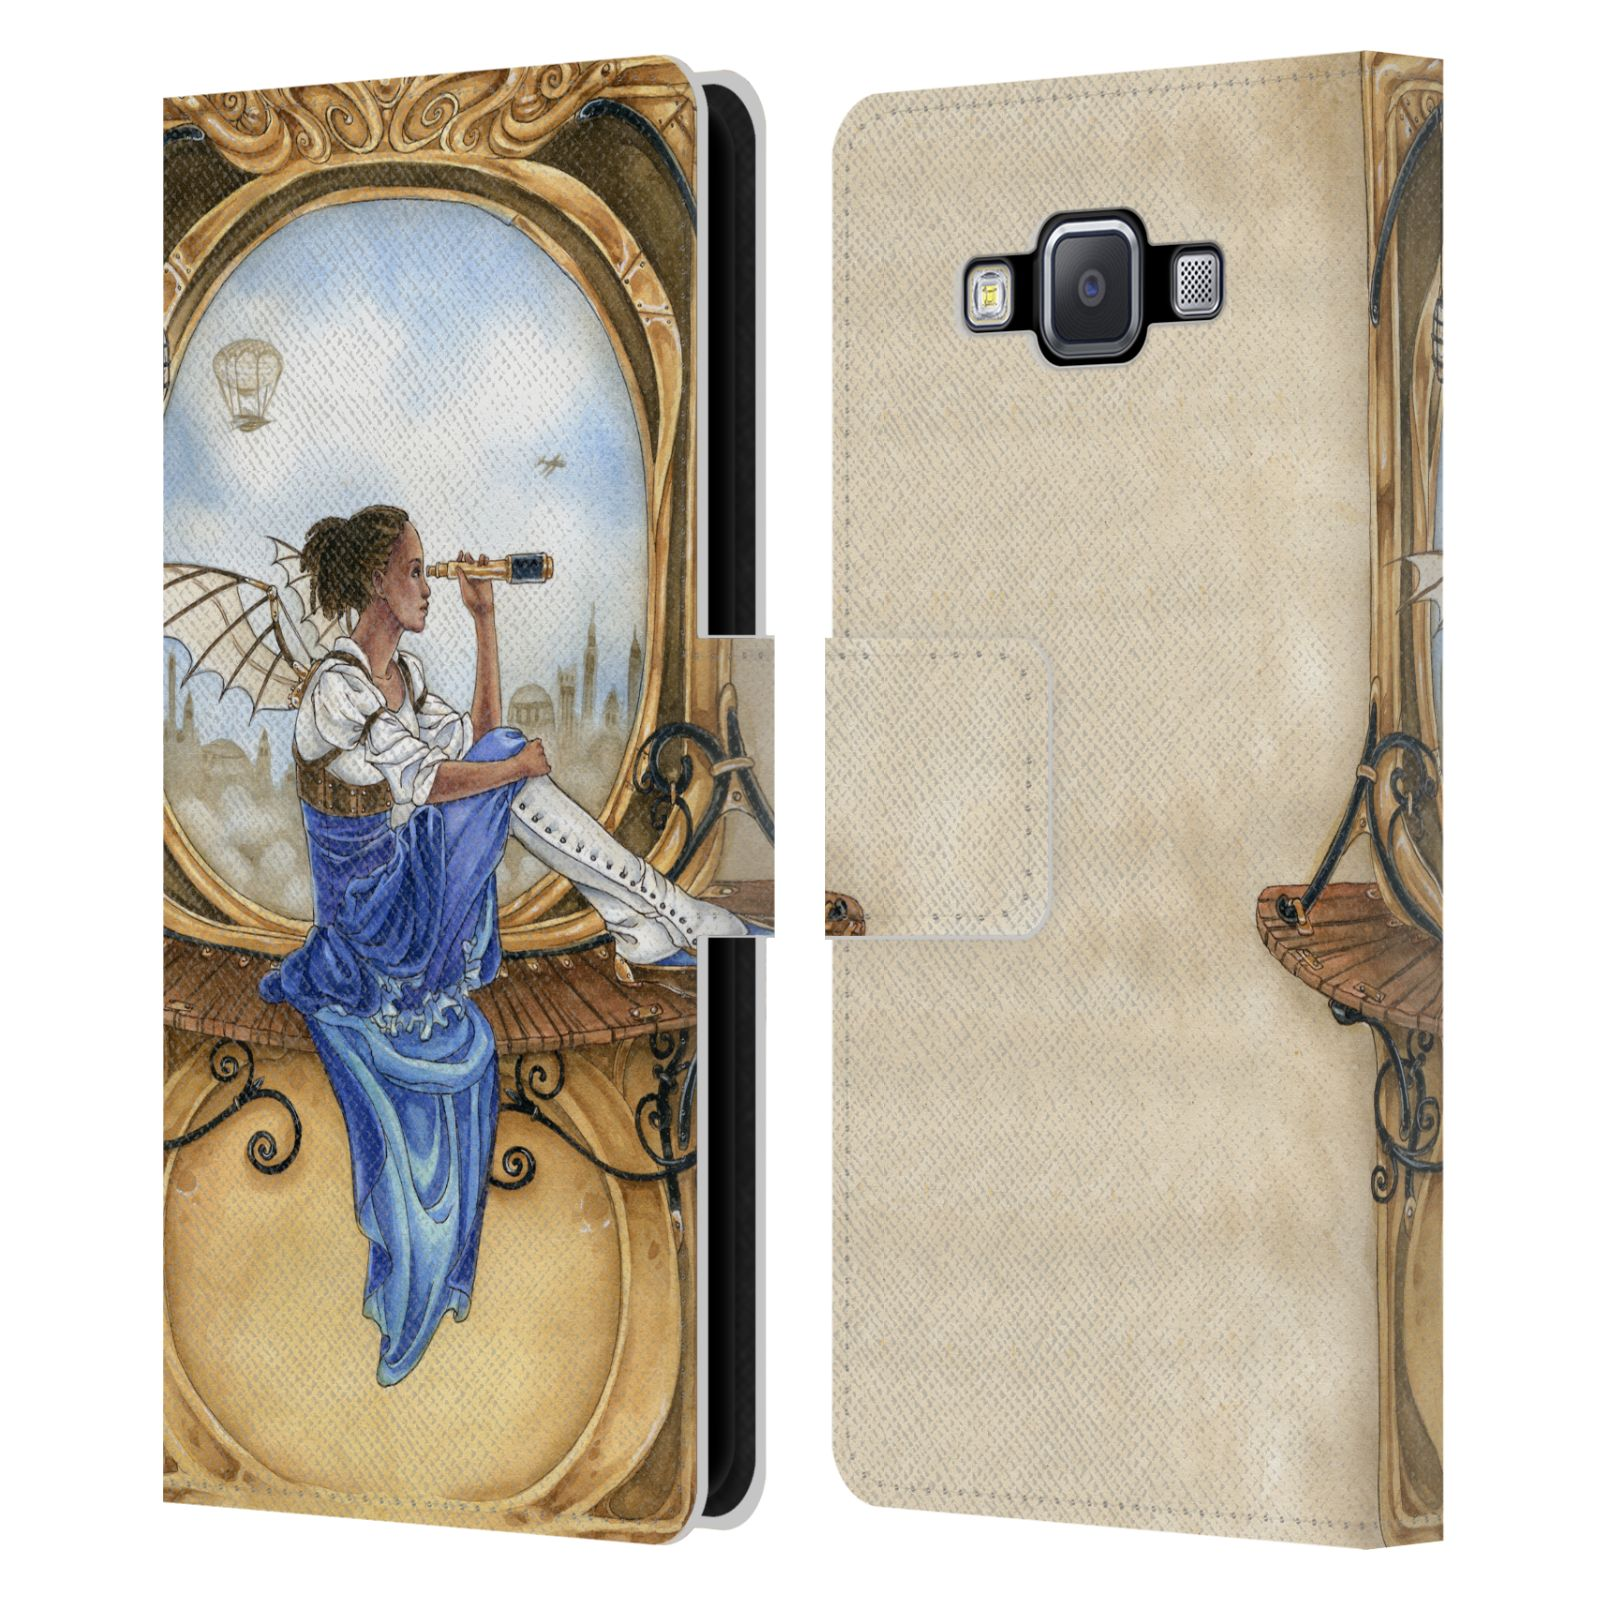 OFFICIAL-MEREDITH-DILLMAN-FAIRY-2-LEATHER-BOOK-WALLET-CASE-FOR-SAMSUNG-PHONES-2